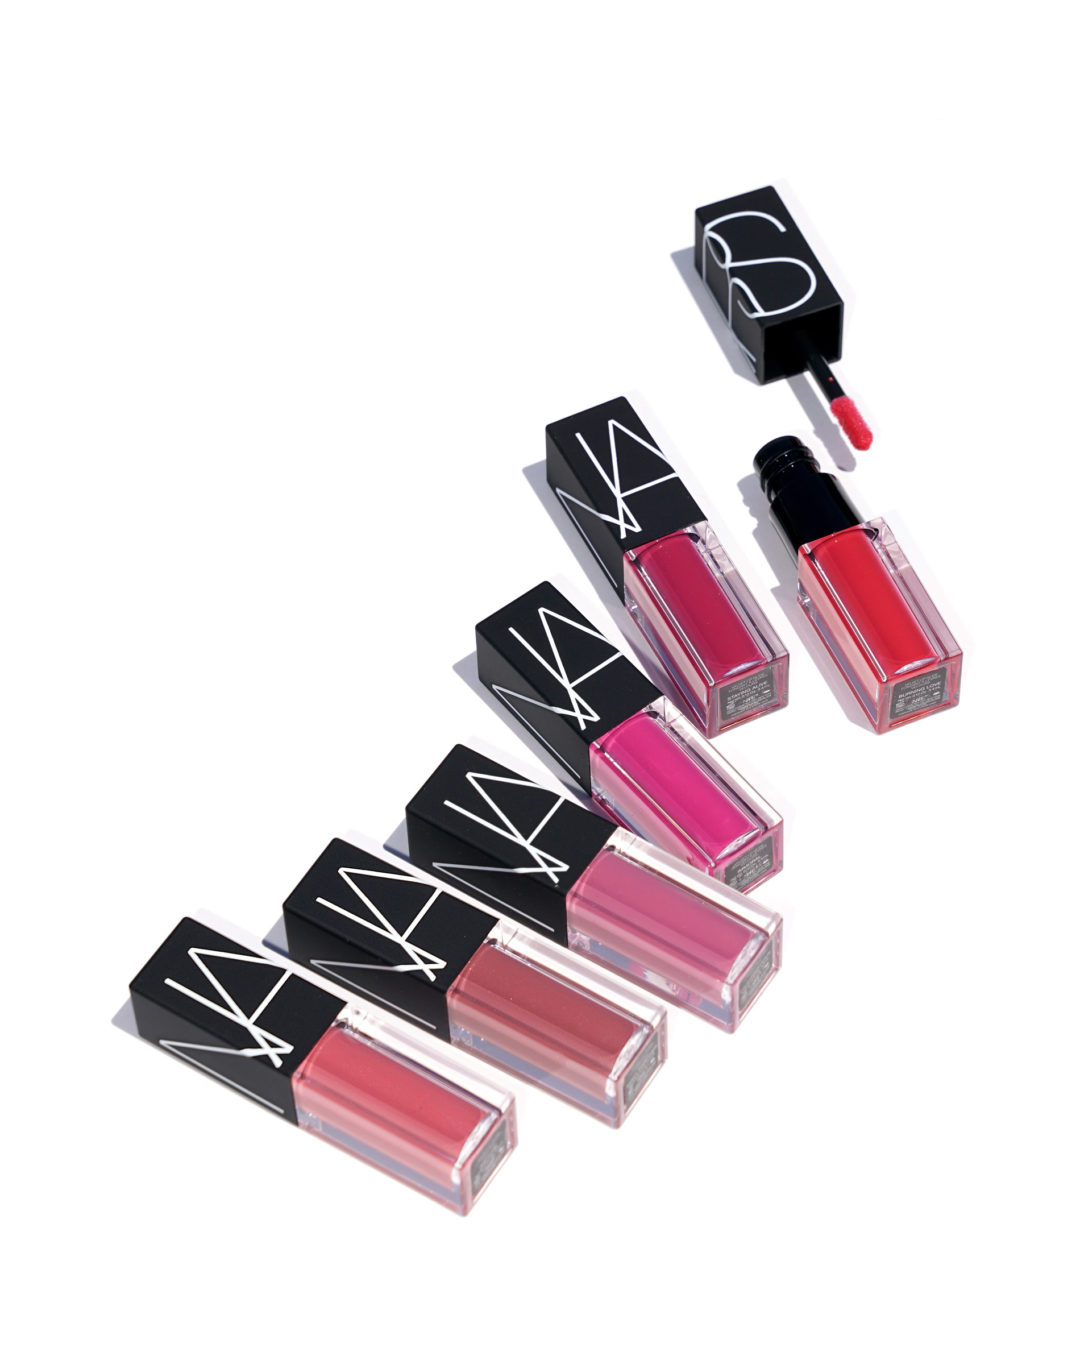 SET NARSISSIST VELVET LIP GLIDE SET (LIMITED EDITION)